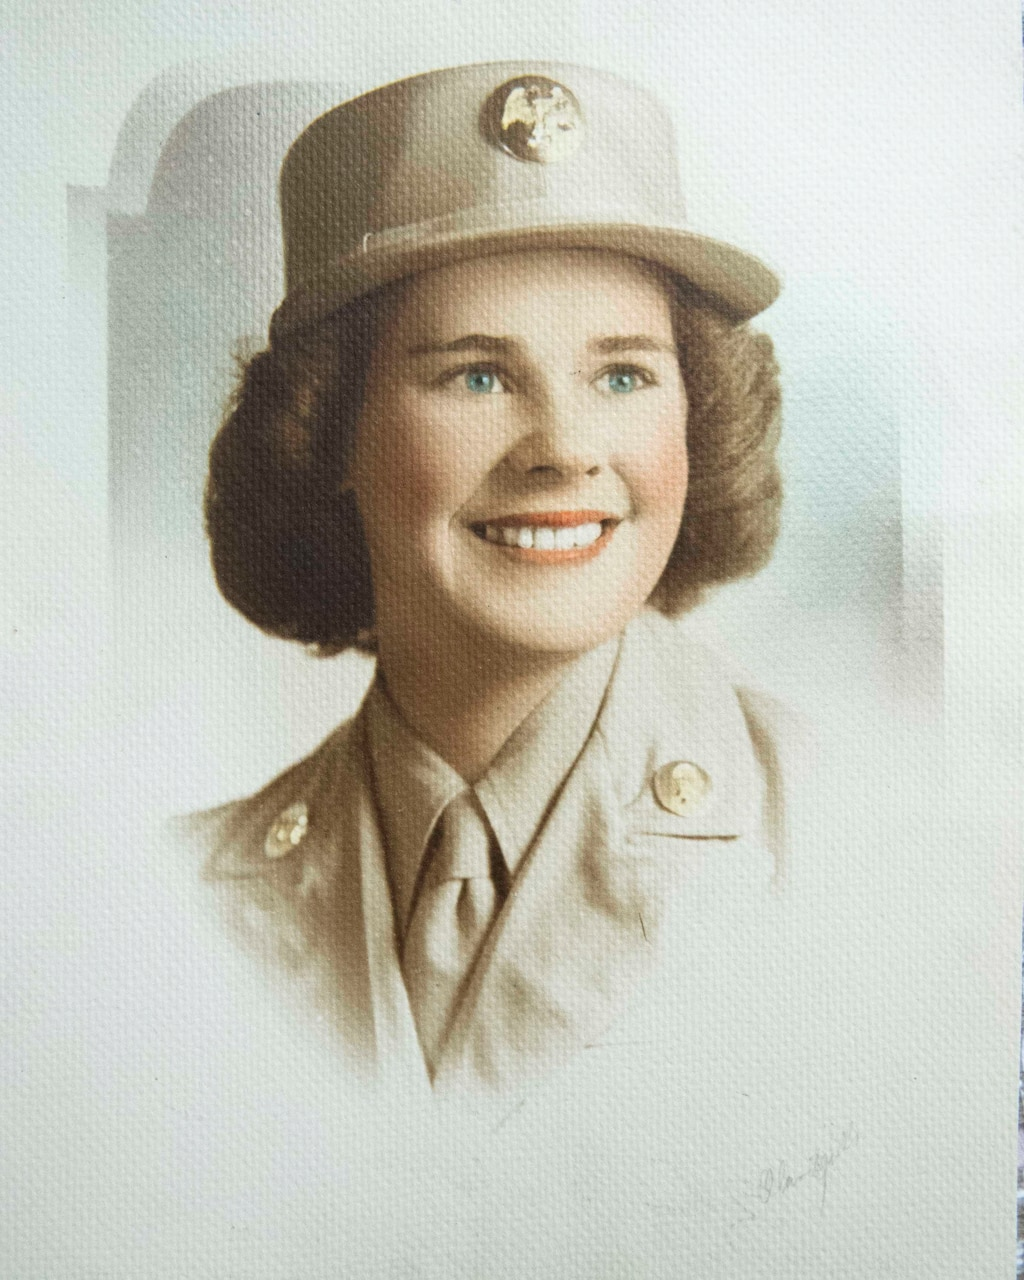 A woman military uniform poses for a photo.